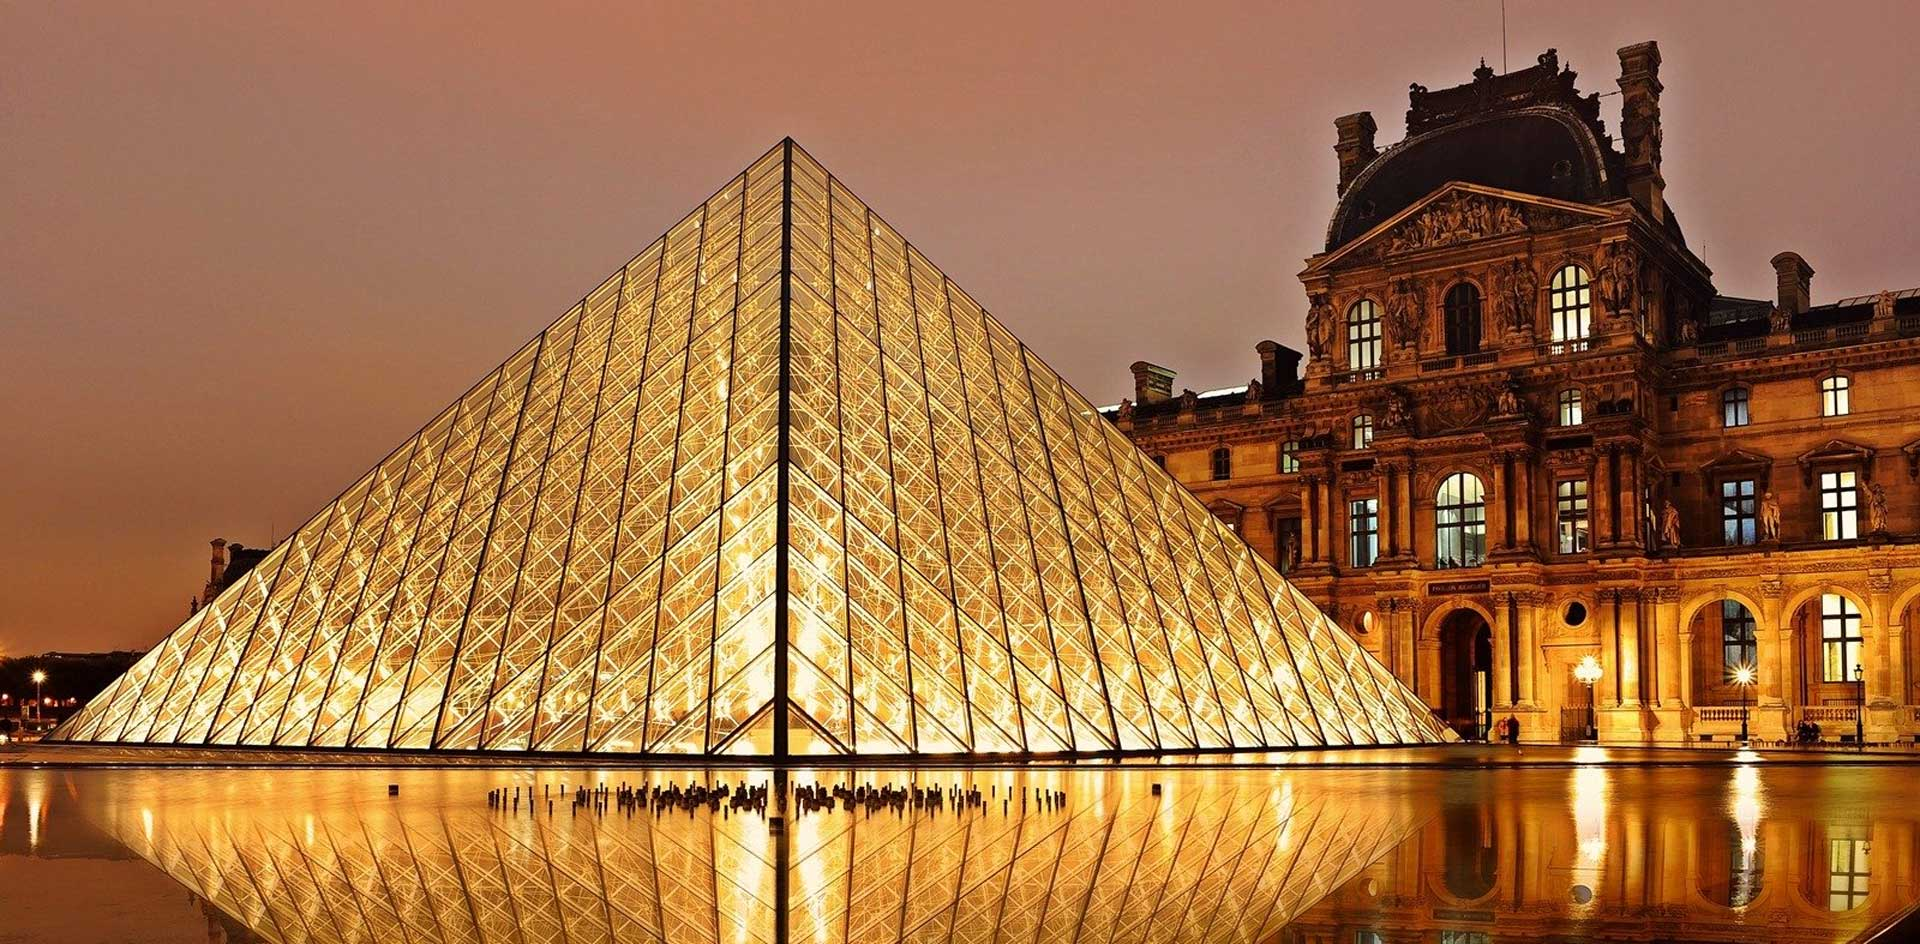 Architectural Lighting Illuminating The Lourve